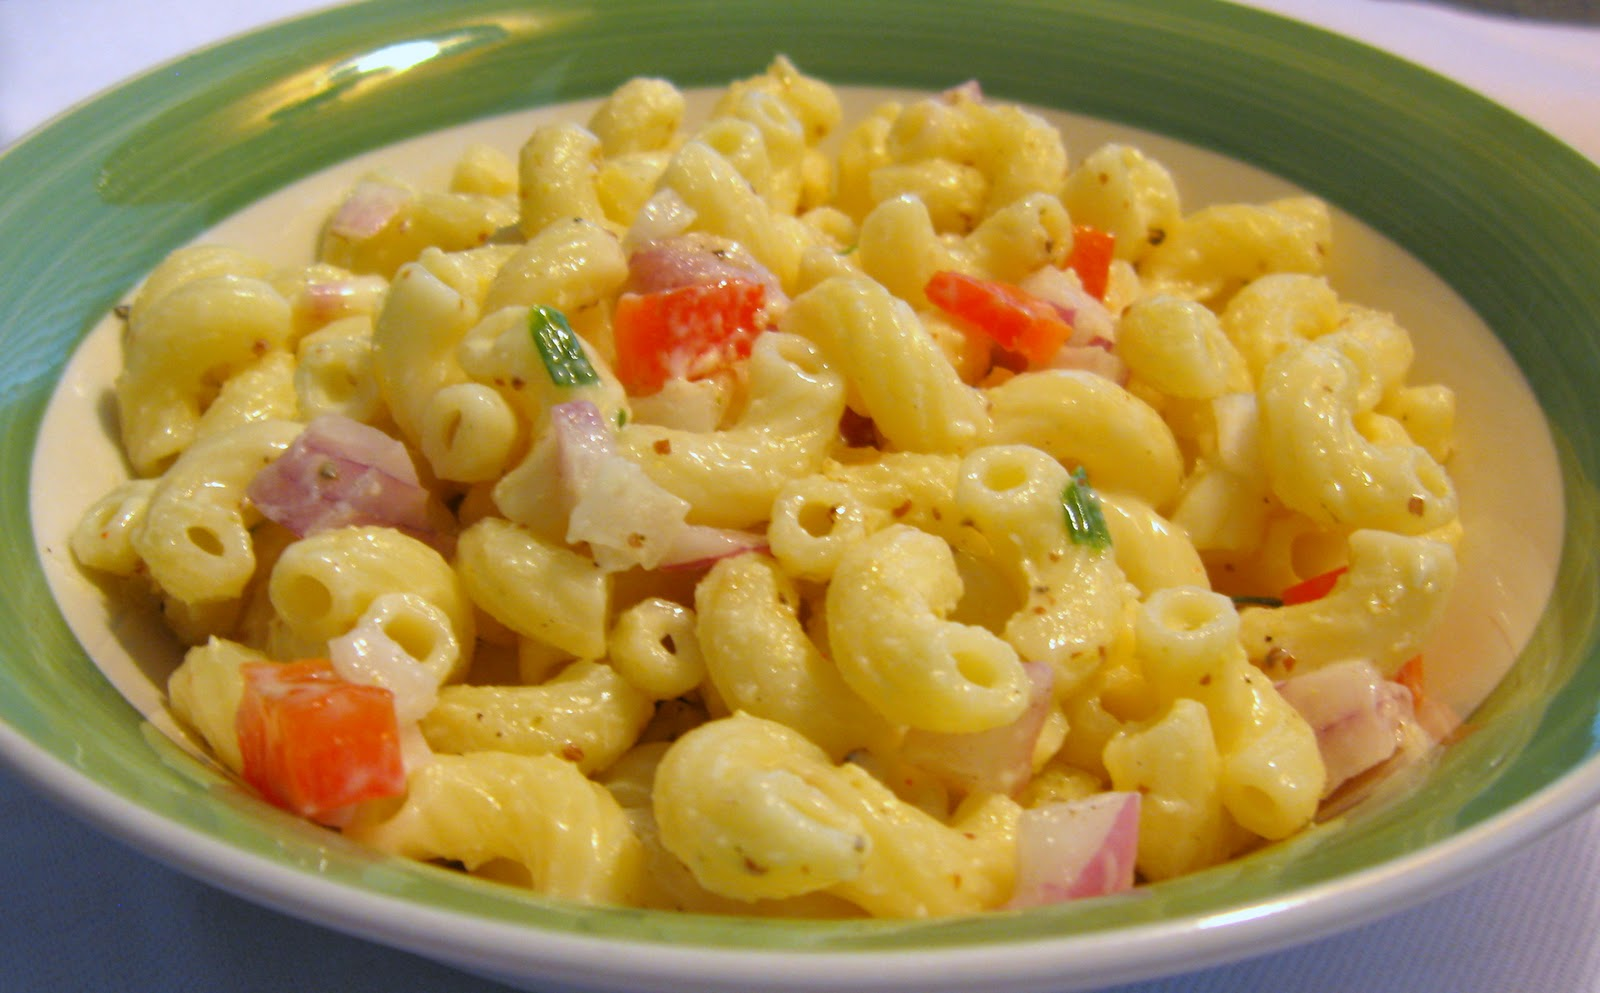 Cool and creamy, this Macaroni Salad lends itself to holiday